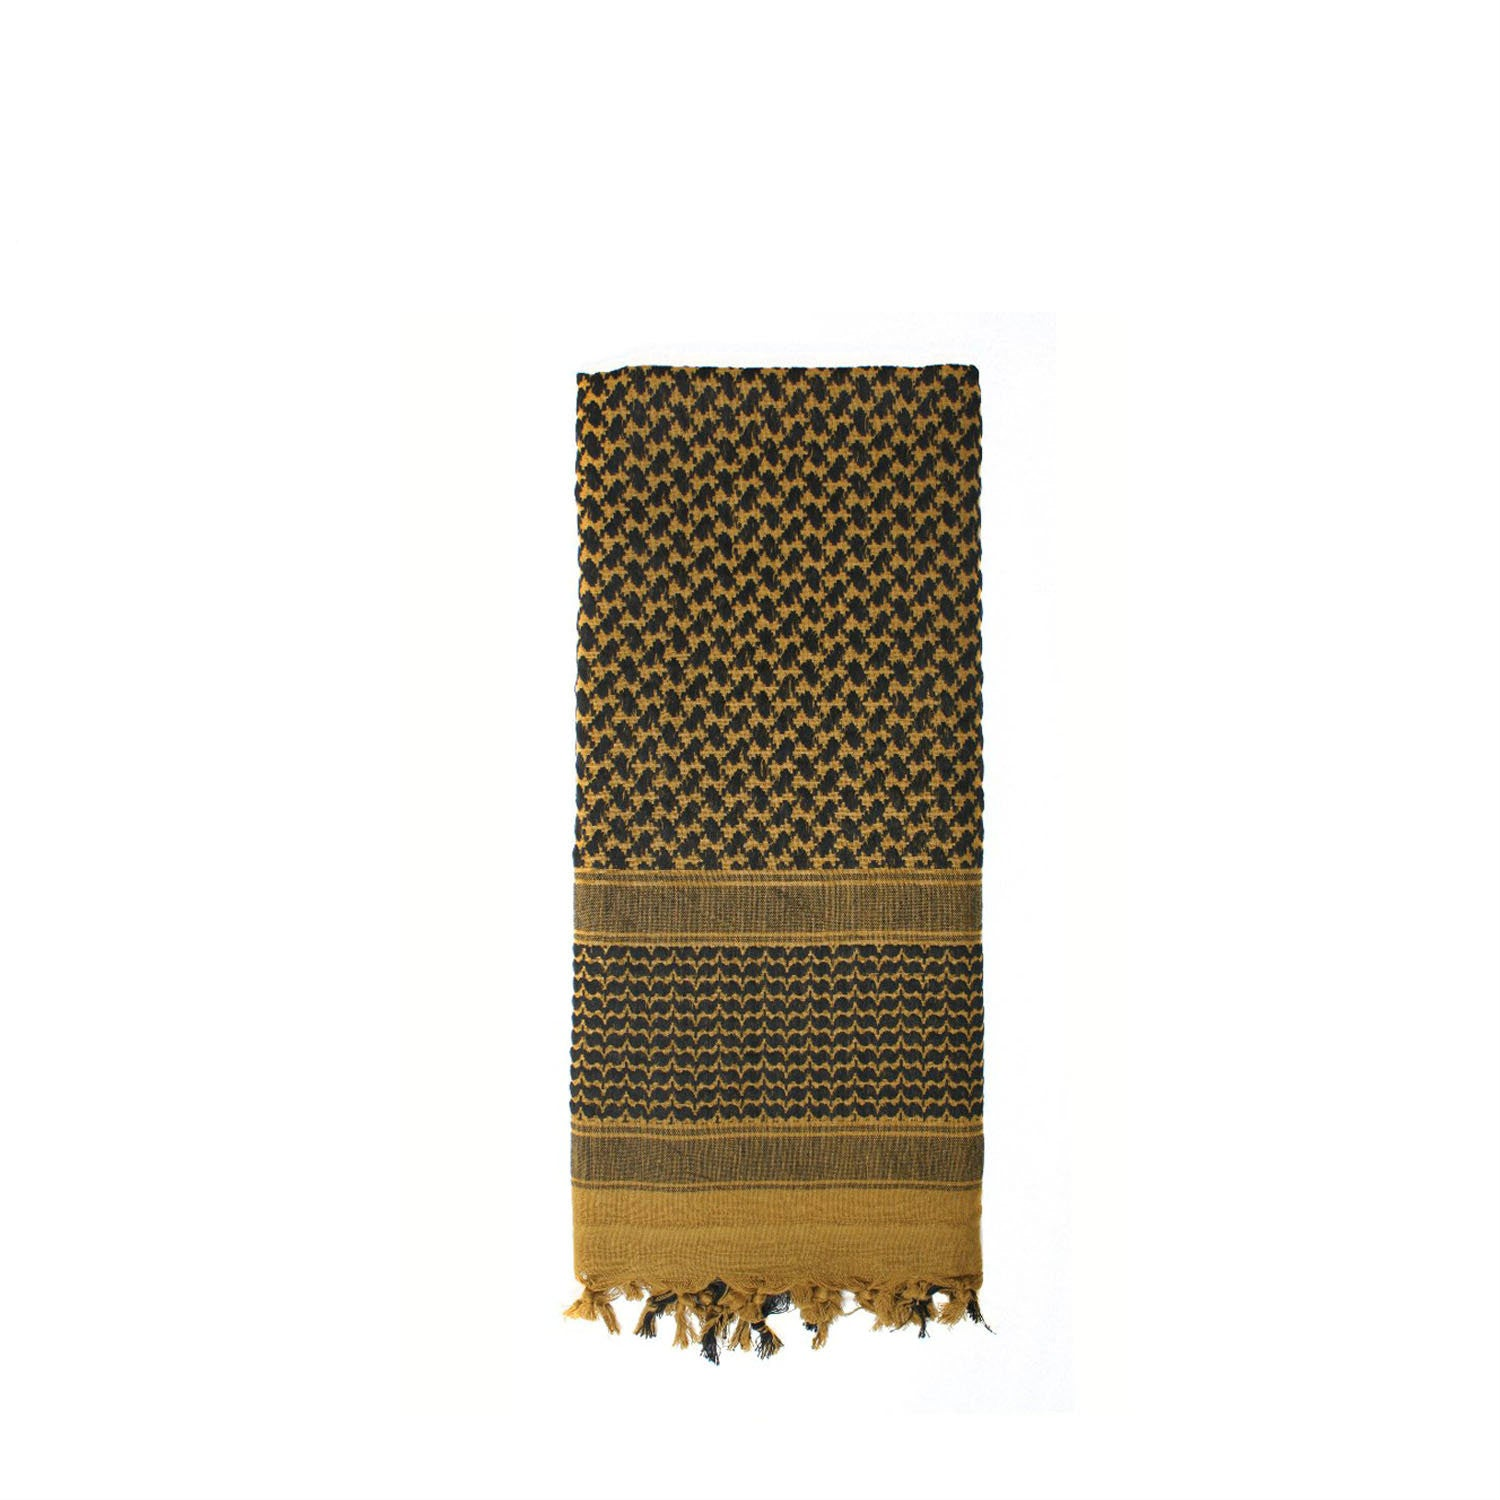 Shemagh Tactical Desert Scarf Coyote / Black